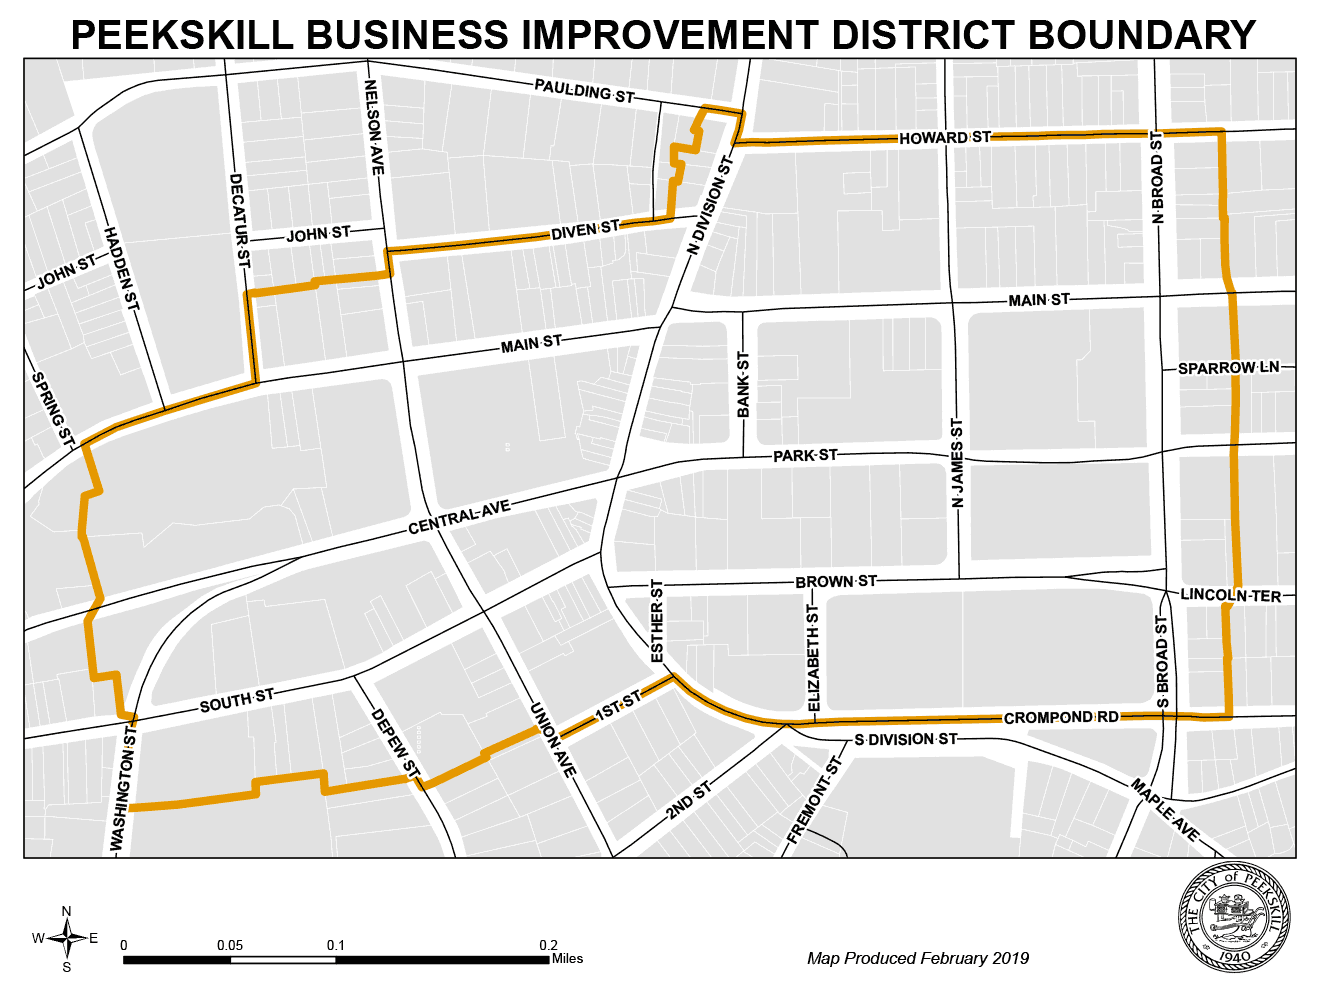 Peekskill Business Improvement District Boundary